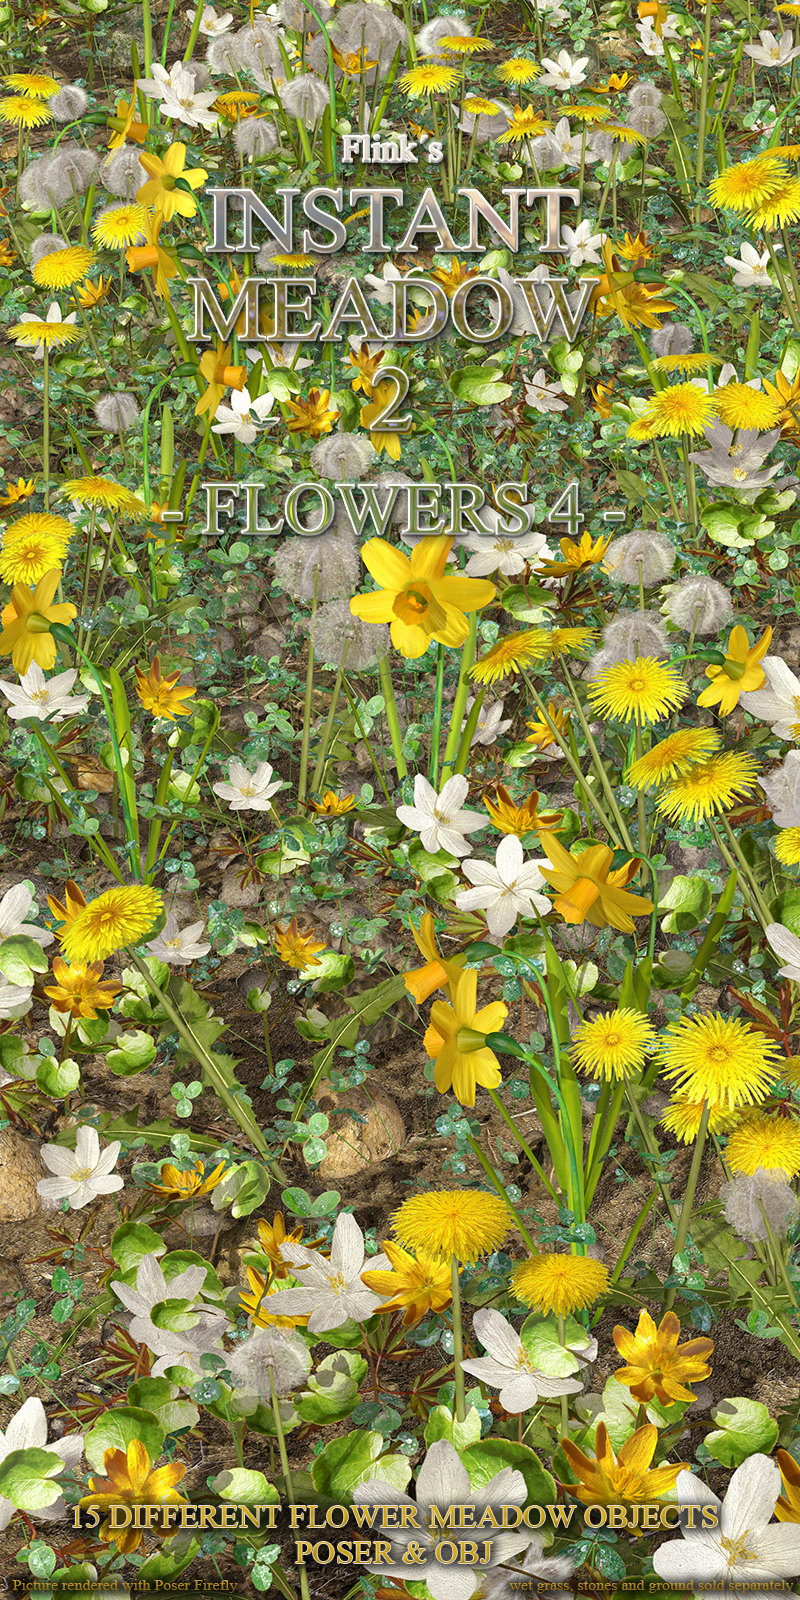 Flinks Instant Meadow 2 - Flowers 4